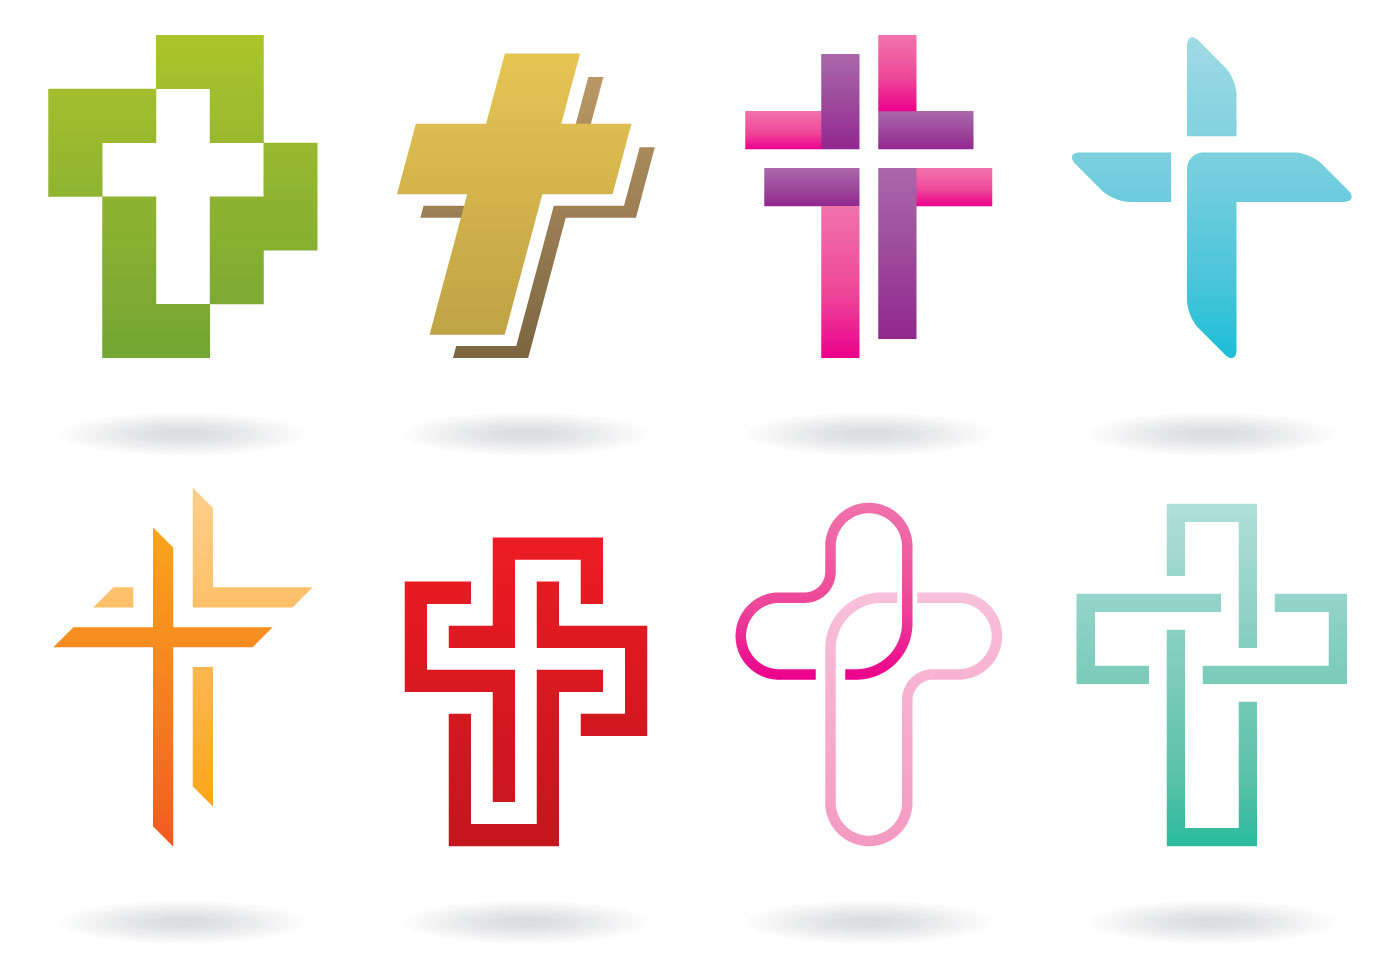 Christian Free Vector Art - (2754 Free Downloads)